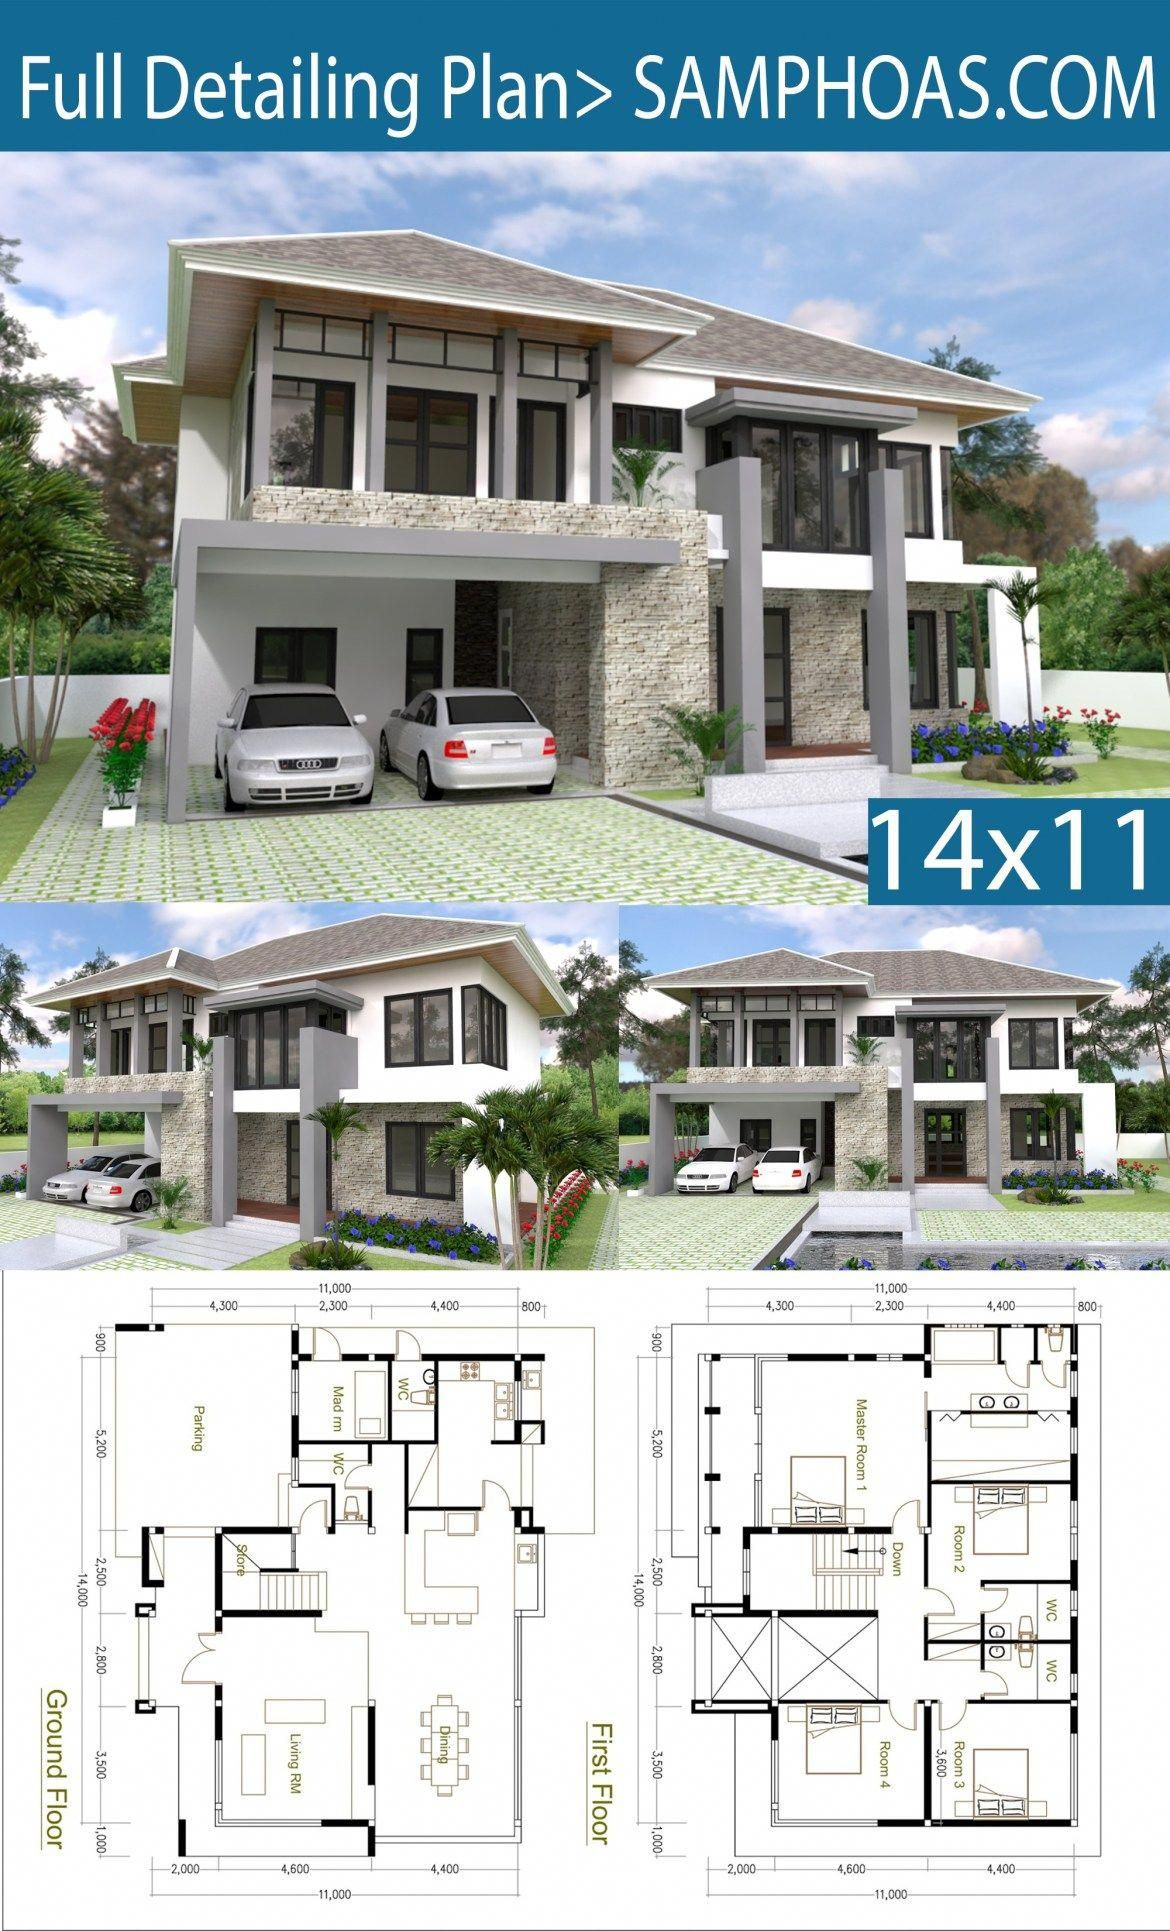 Modern Home Architecture Design Modernhomedesign Home Design Plan House Architecture Design House Layout Plans